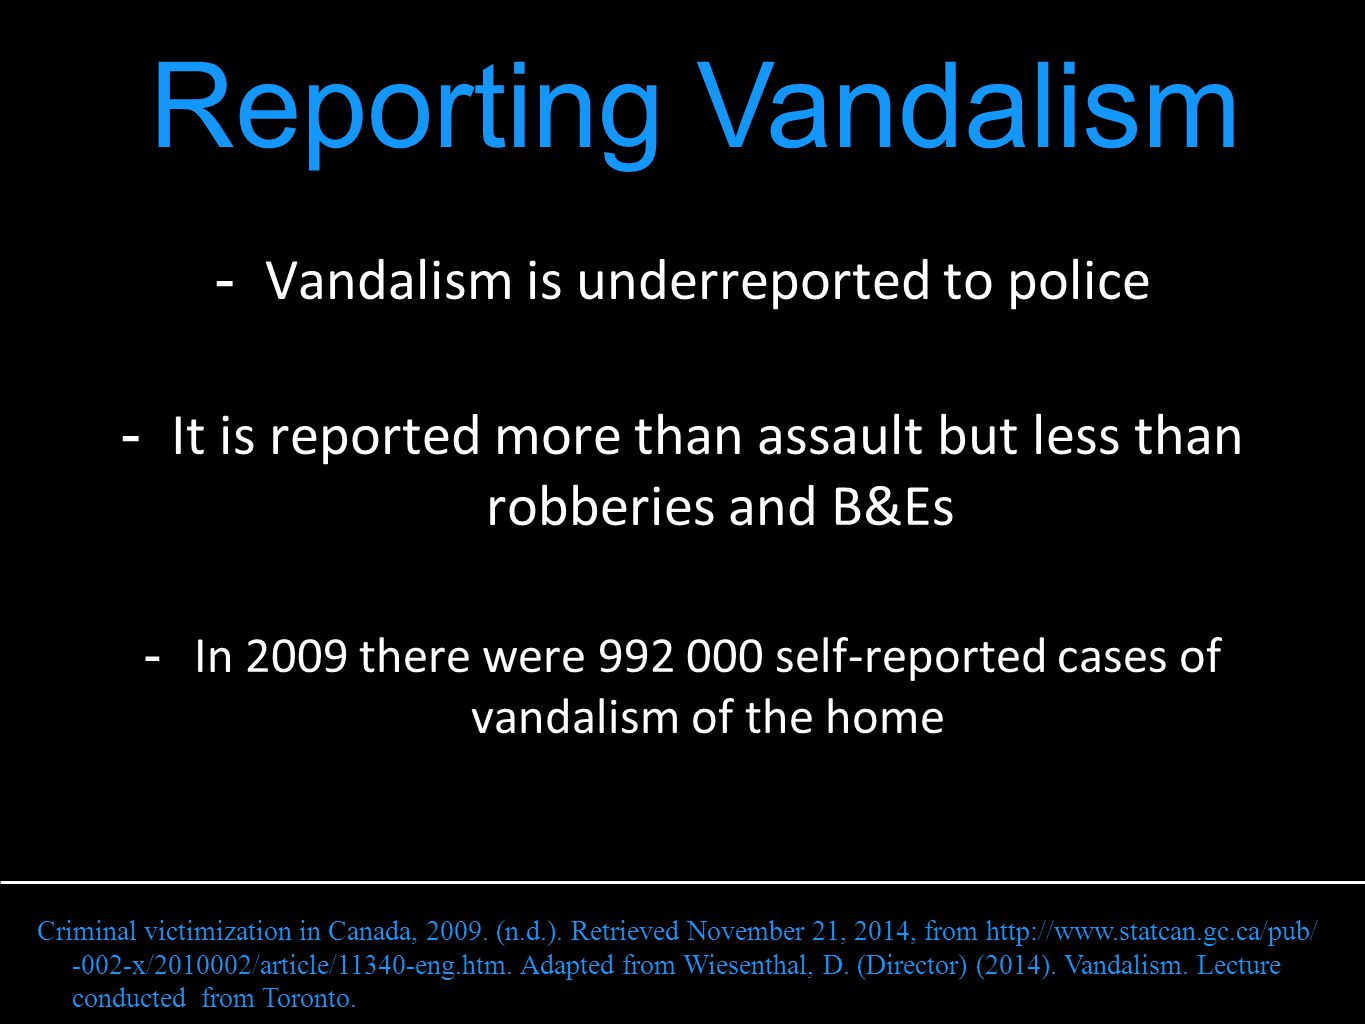 - Vandalism is underreported to police - It is reported more than assault but less than robberies and B&Es - In 2009 there were 992 000 self-reported cases of vandalism of the home Reporting Vandalism Criminal victimization in Canada, 2009.